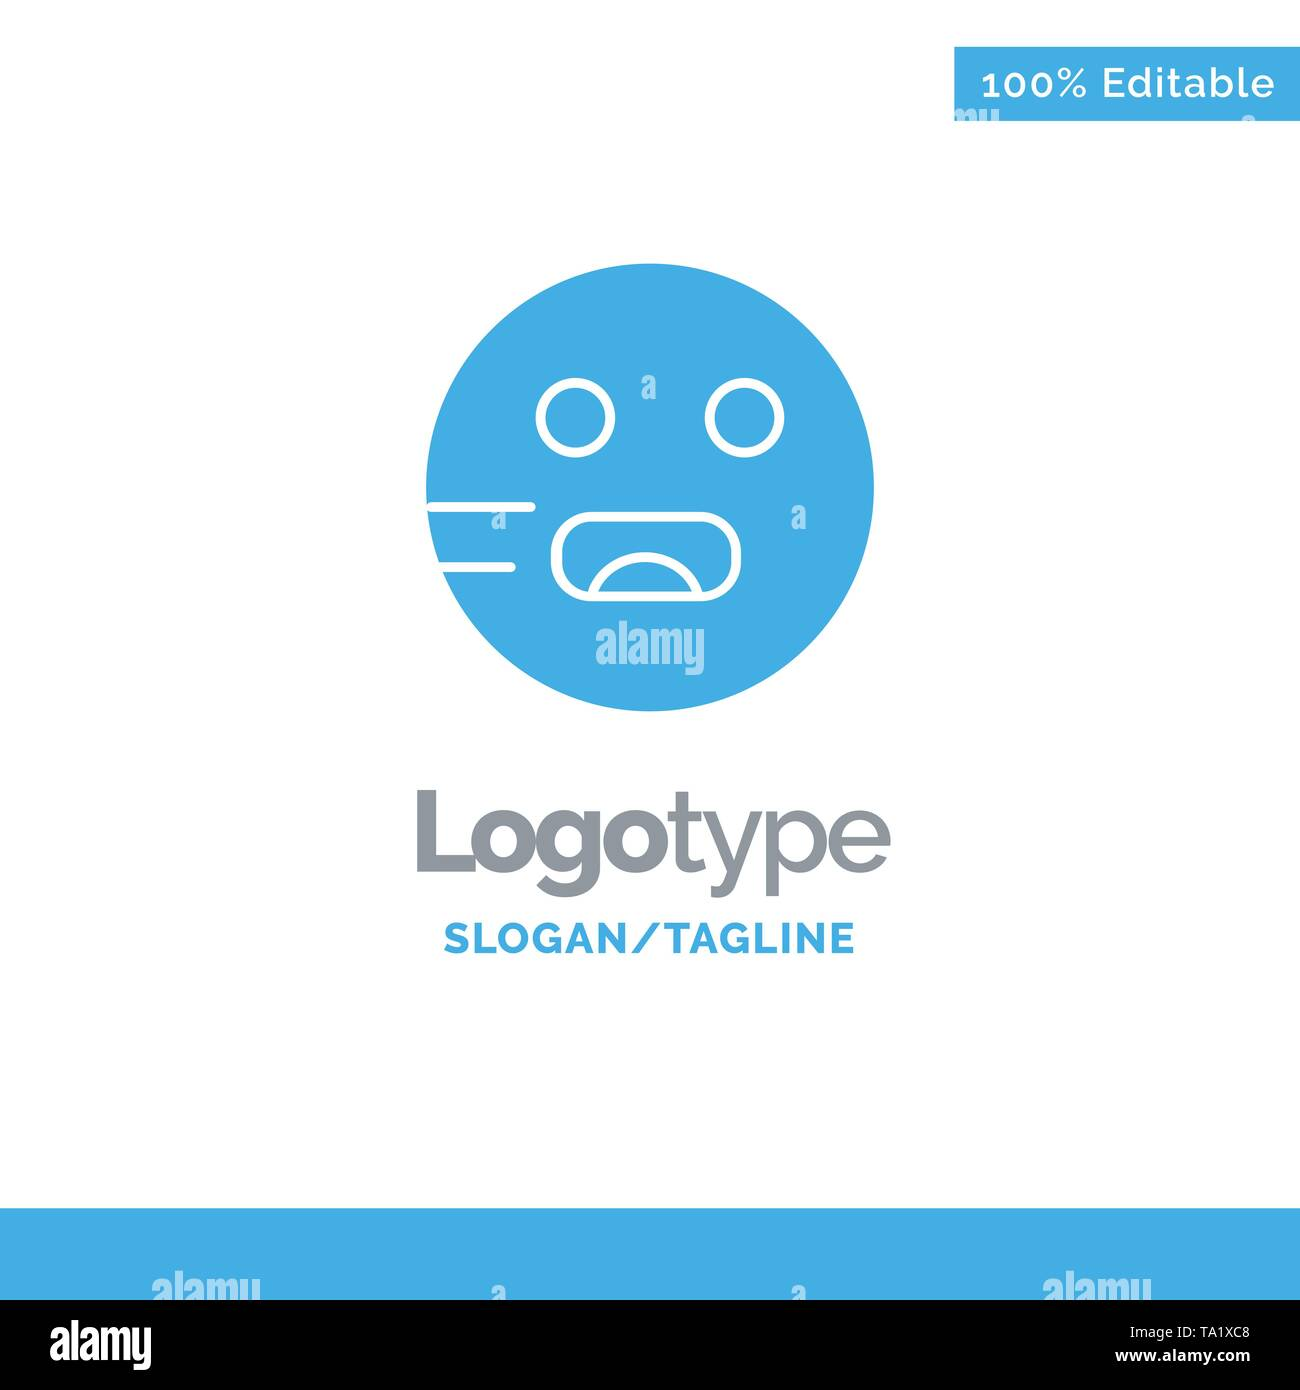 Emojis, Emoticon, Hungry, School Blue Solid Logo Template. Place for Tagline - Stock Image